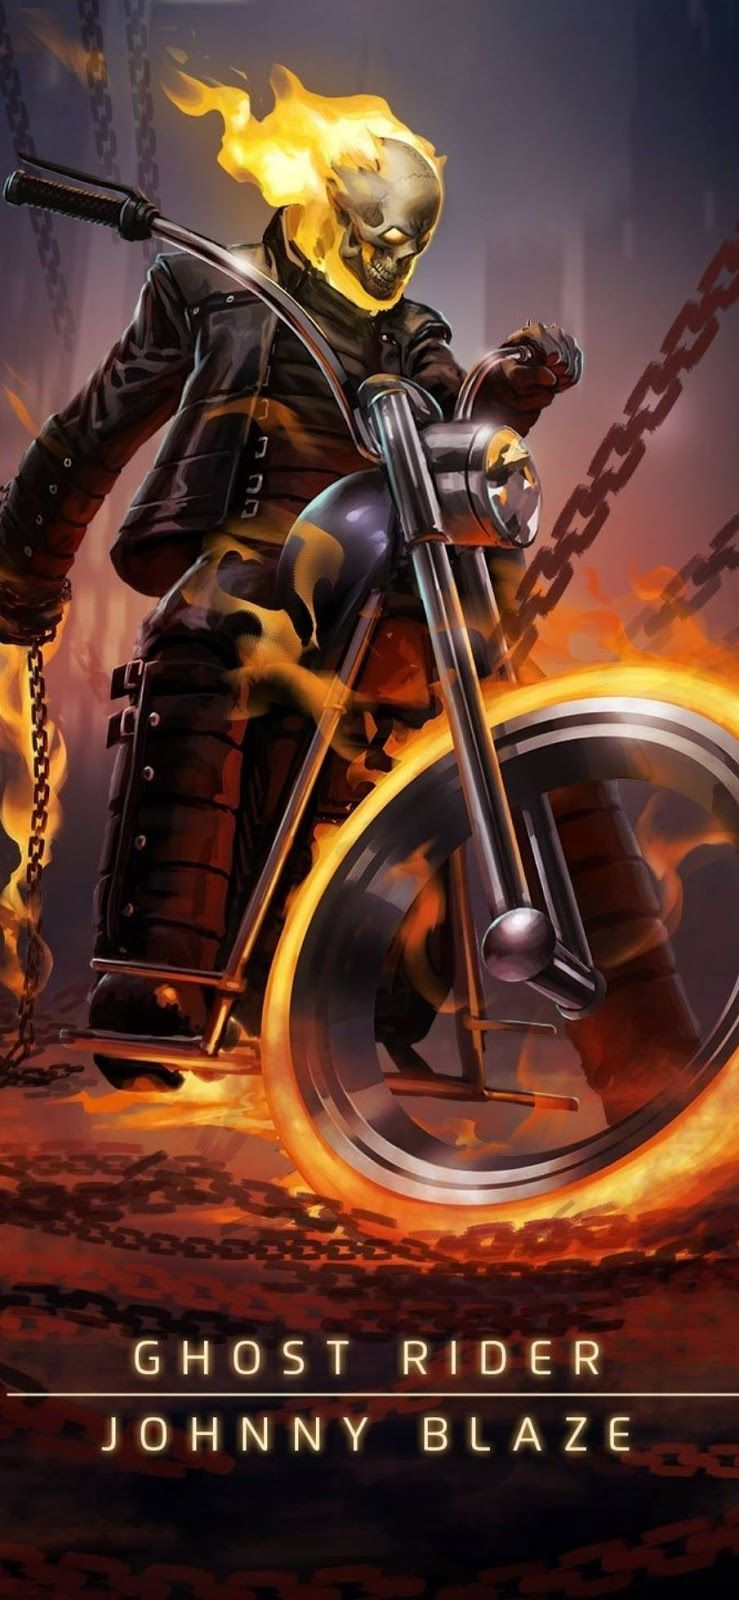 Ghost Rider Images Full Hd For Mobile Screen Wallpaper Background Ghost Rider Bike Images Hd Ghost Rider Imag Ghost Rider Images Ghost Rider Bike Ghost Rider Ghost rider full hd wallpaper for mobile